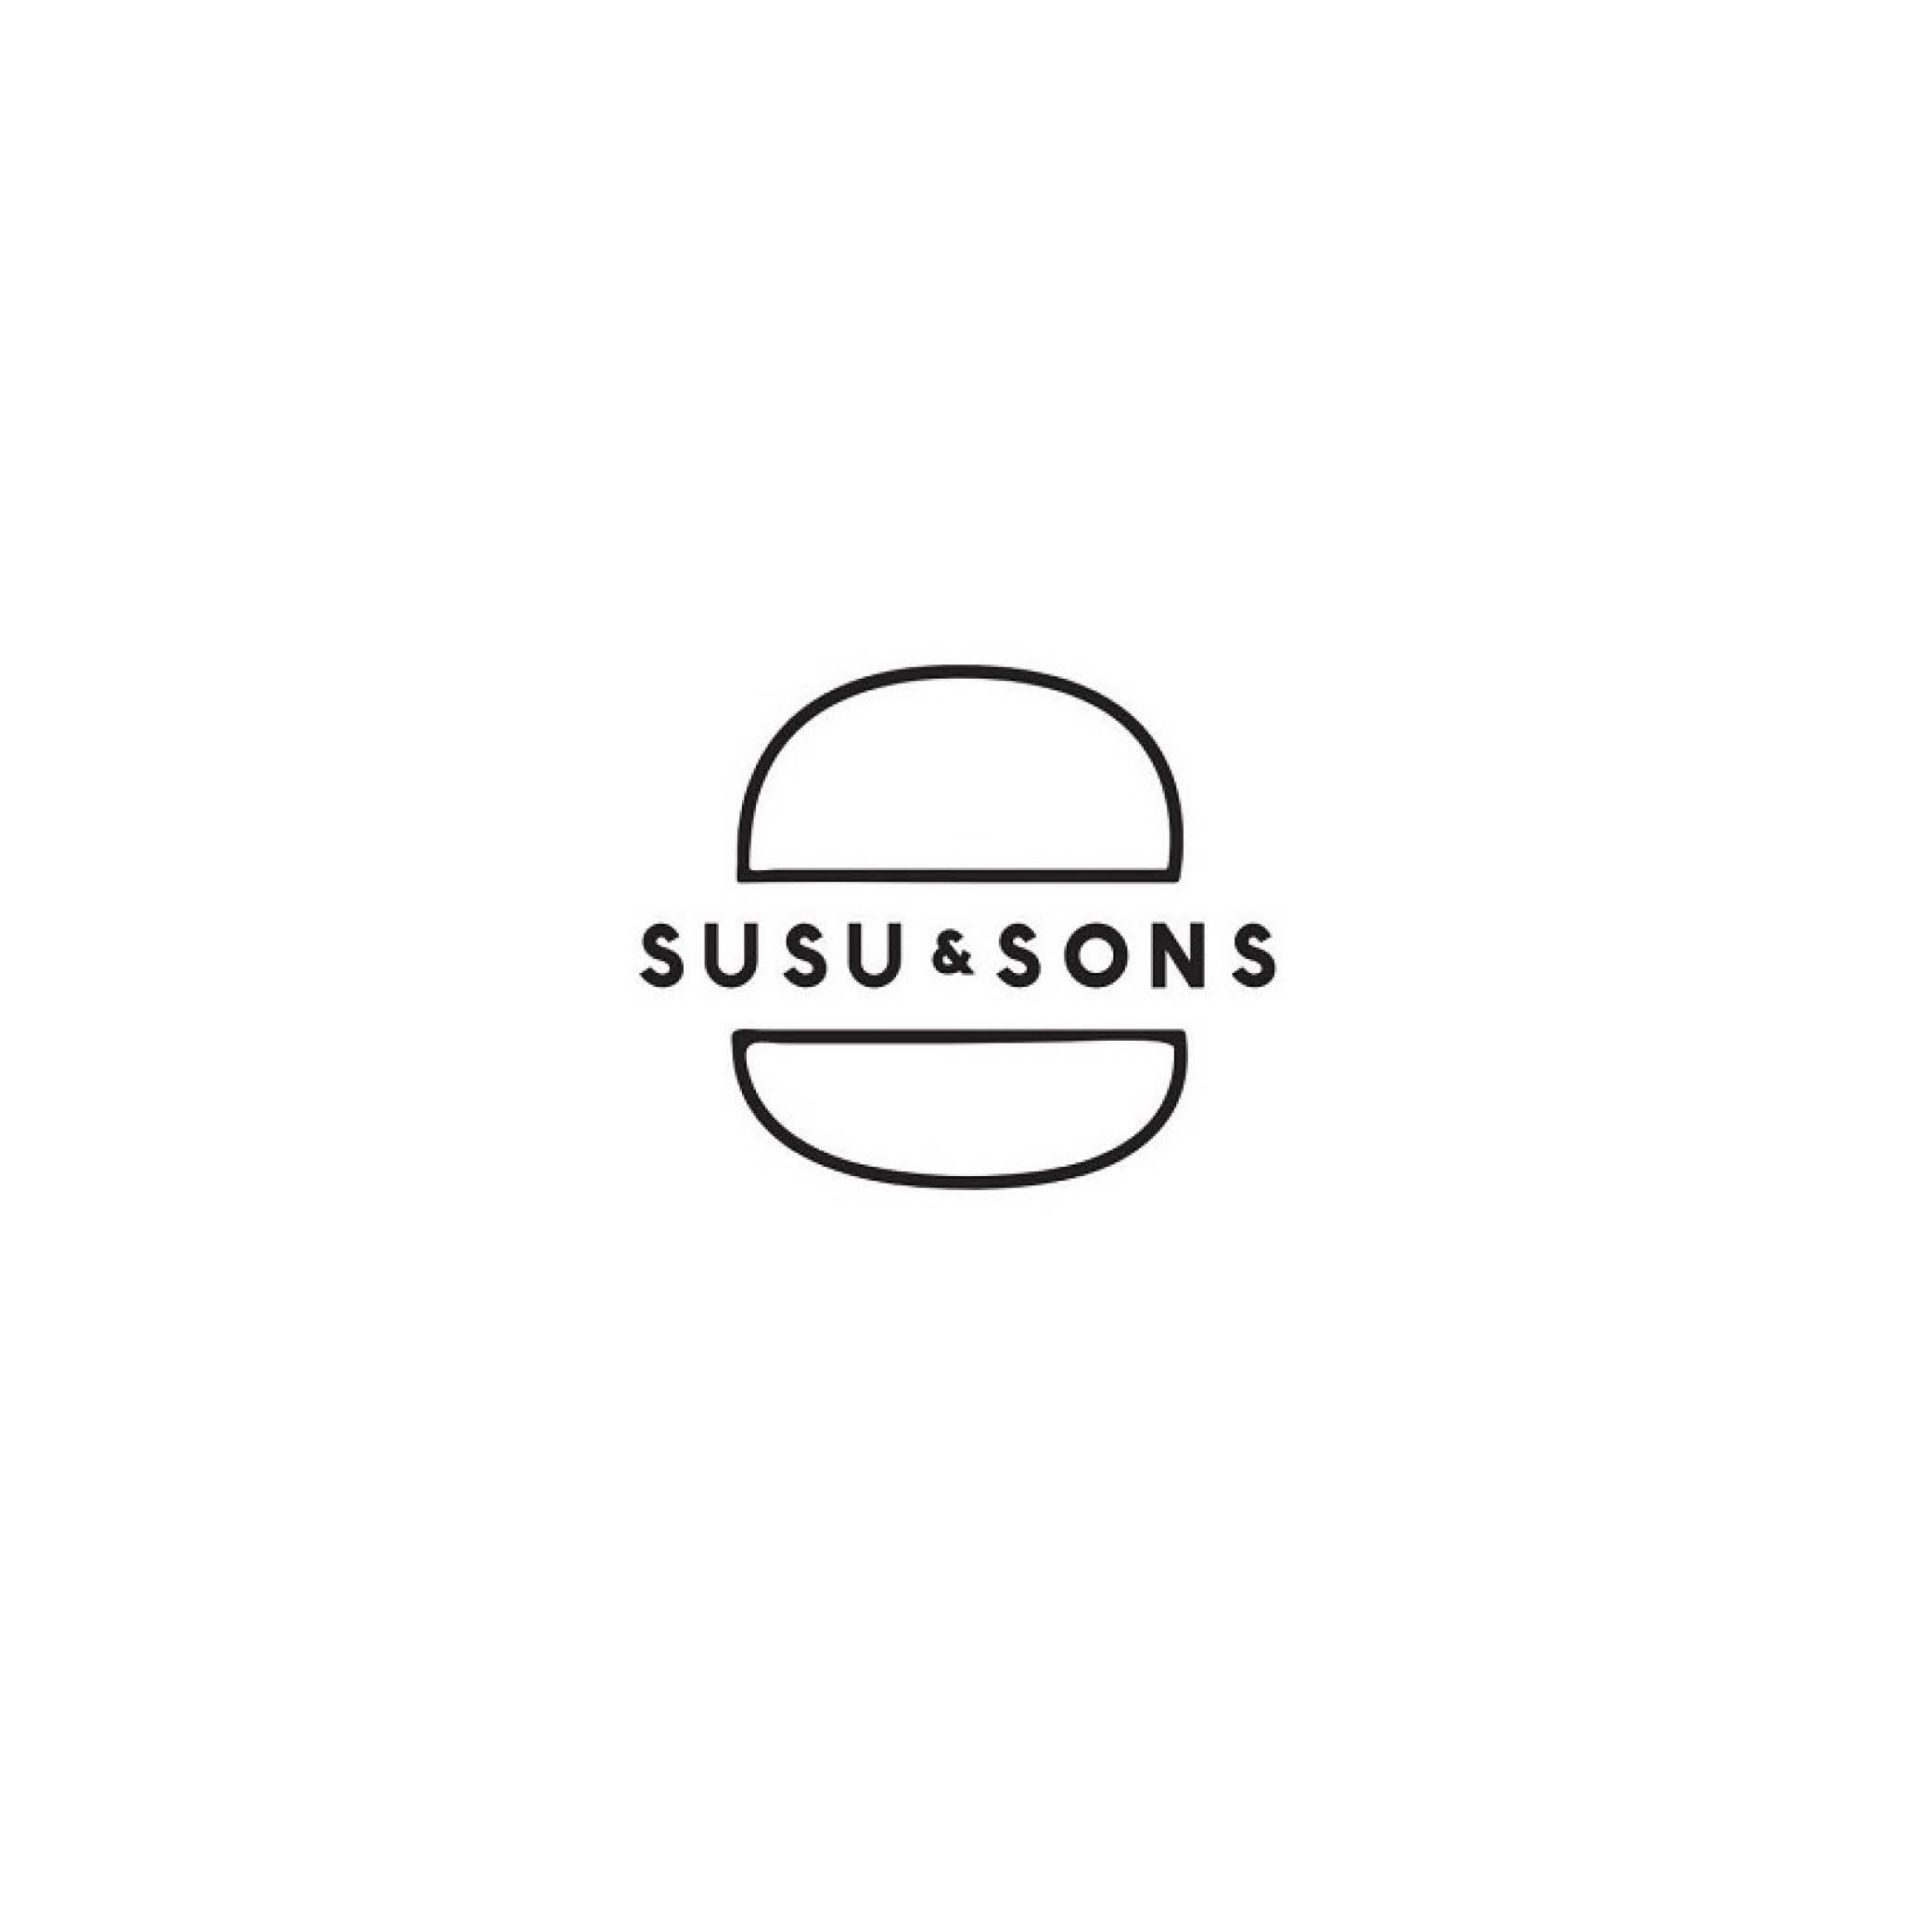 logos_for_site32